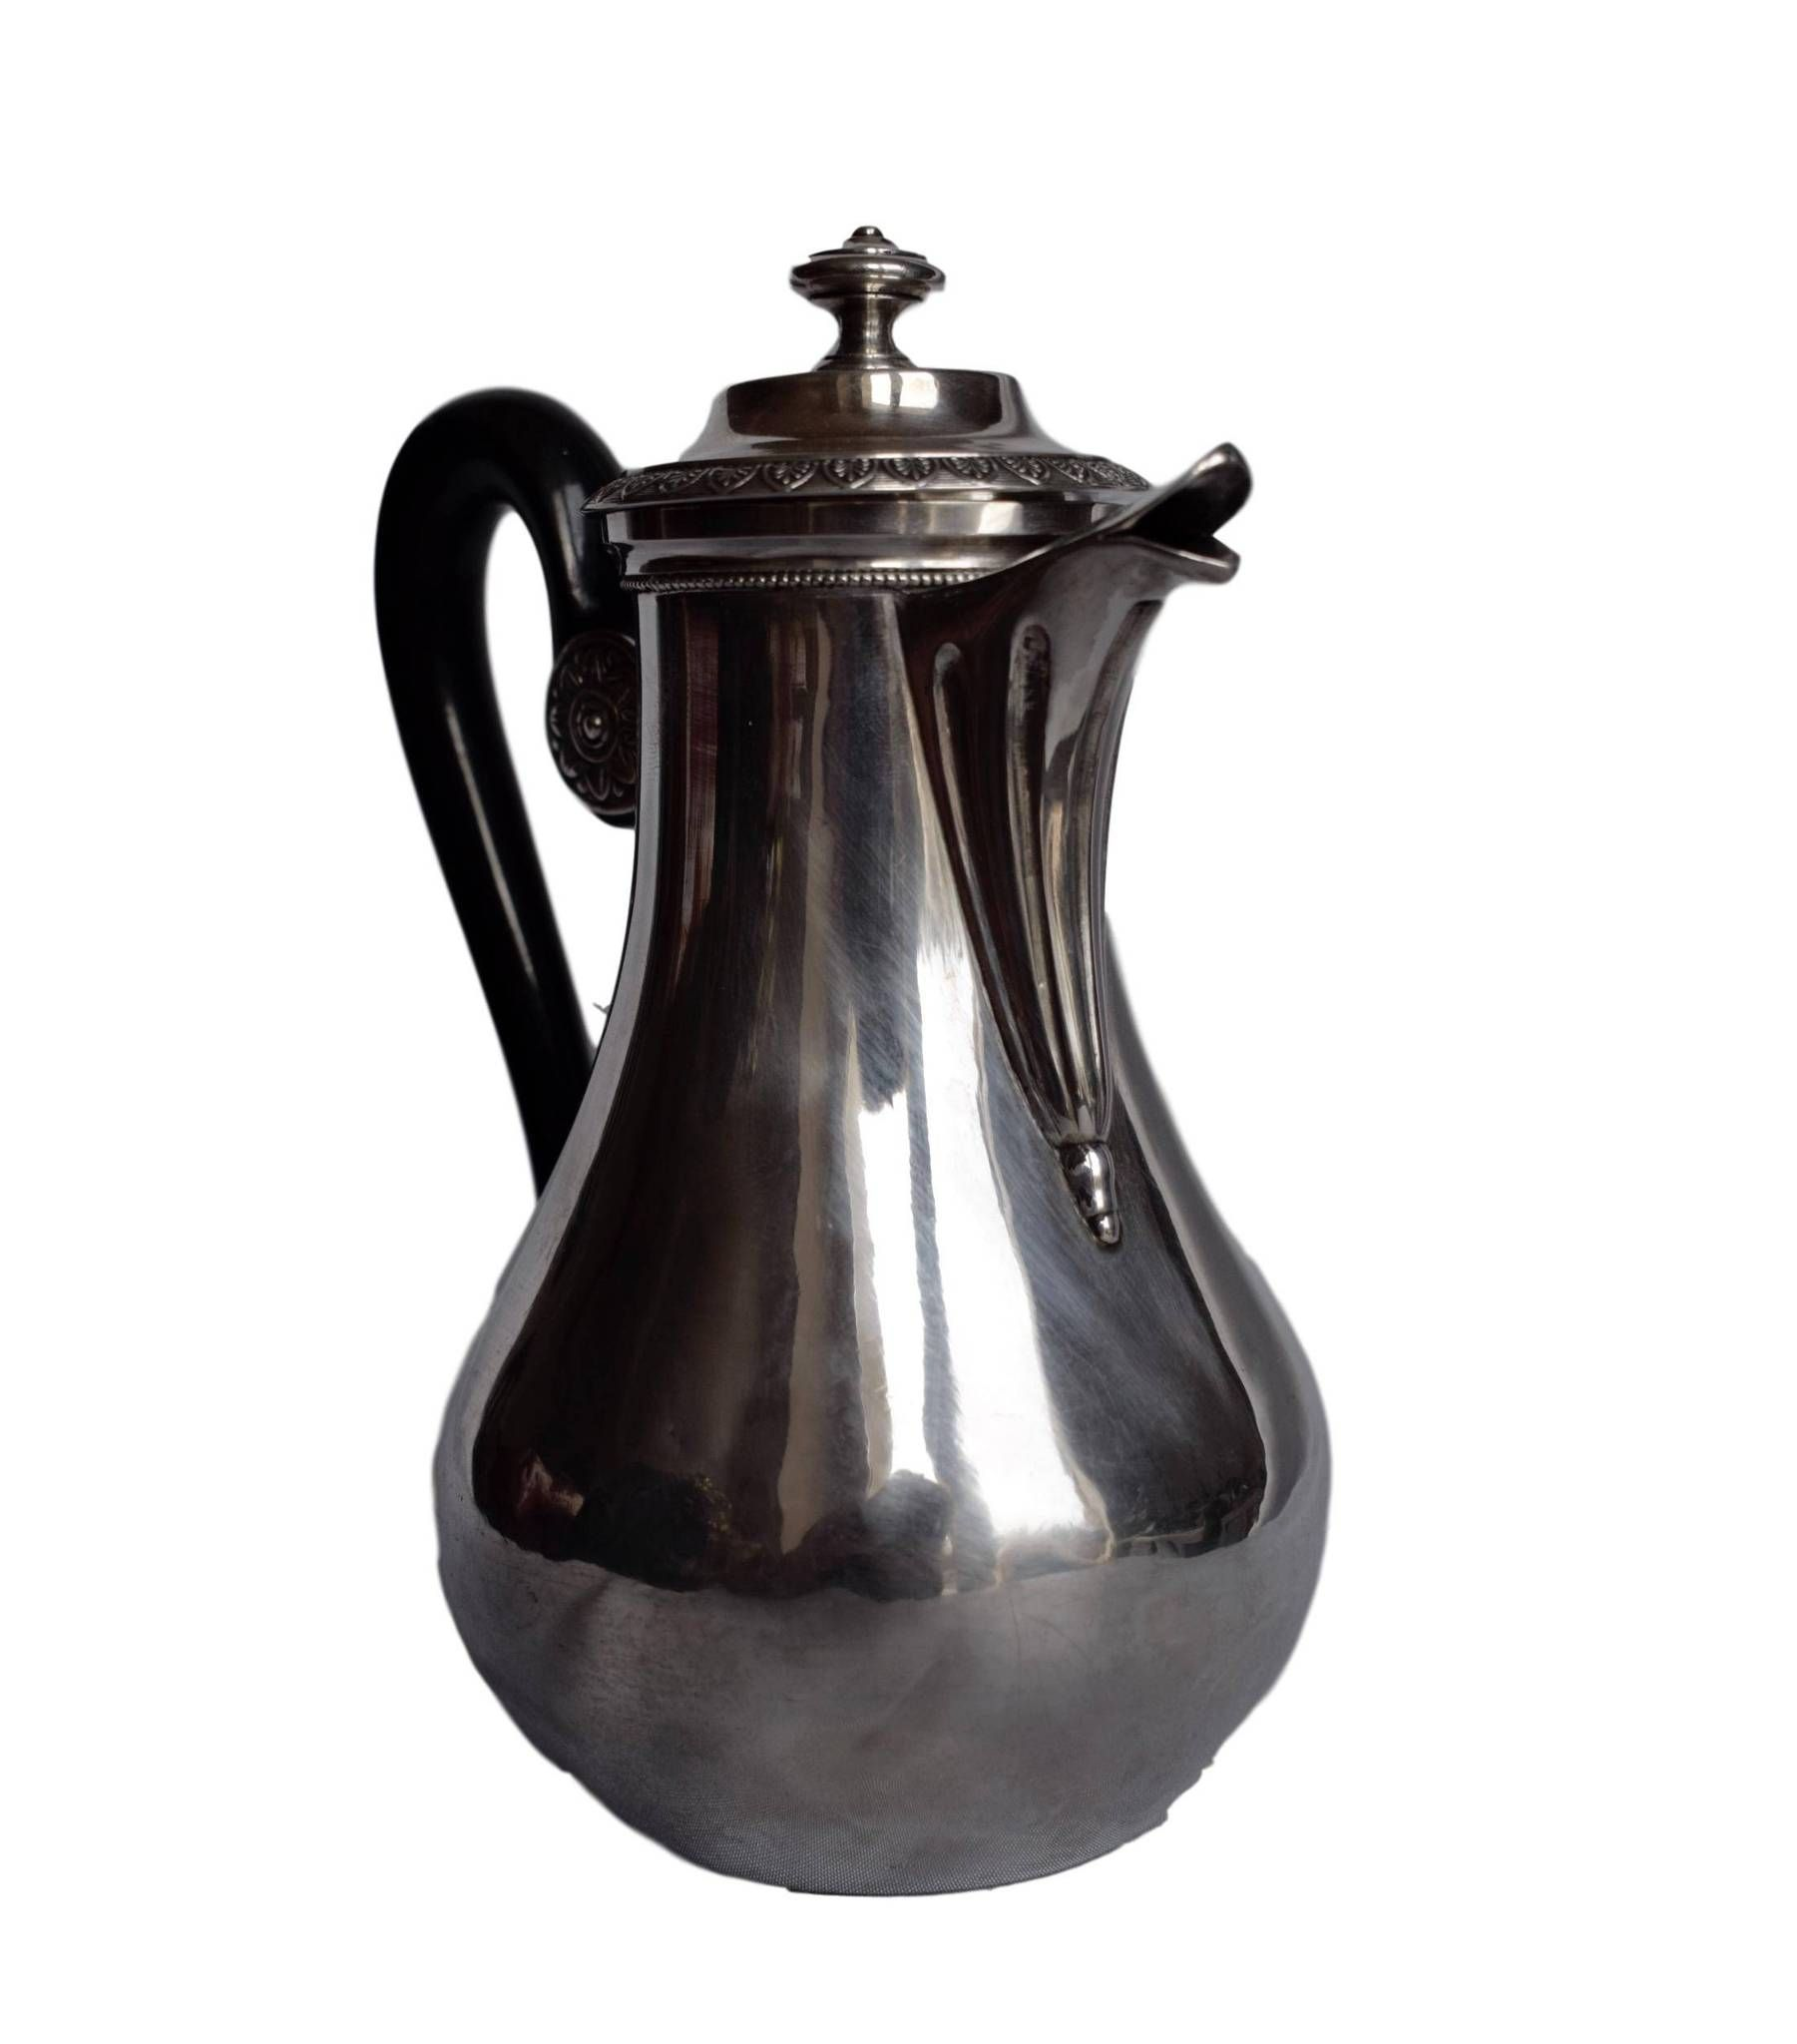 French Antique Sterling Silver Coffee Tea Pot With Ebony Handle Old Man Hallmark 1819 1838 Empire Silverware Solid